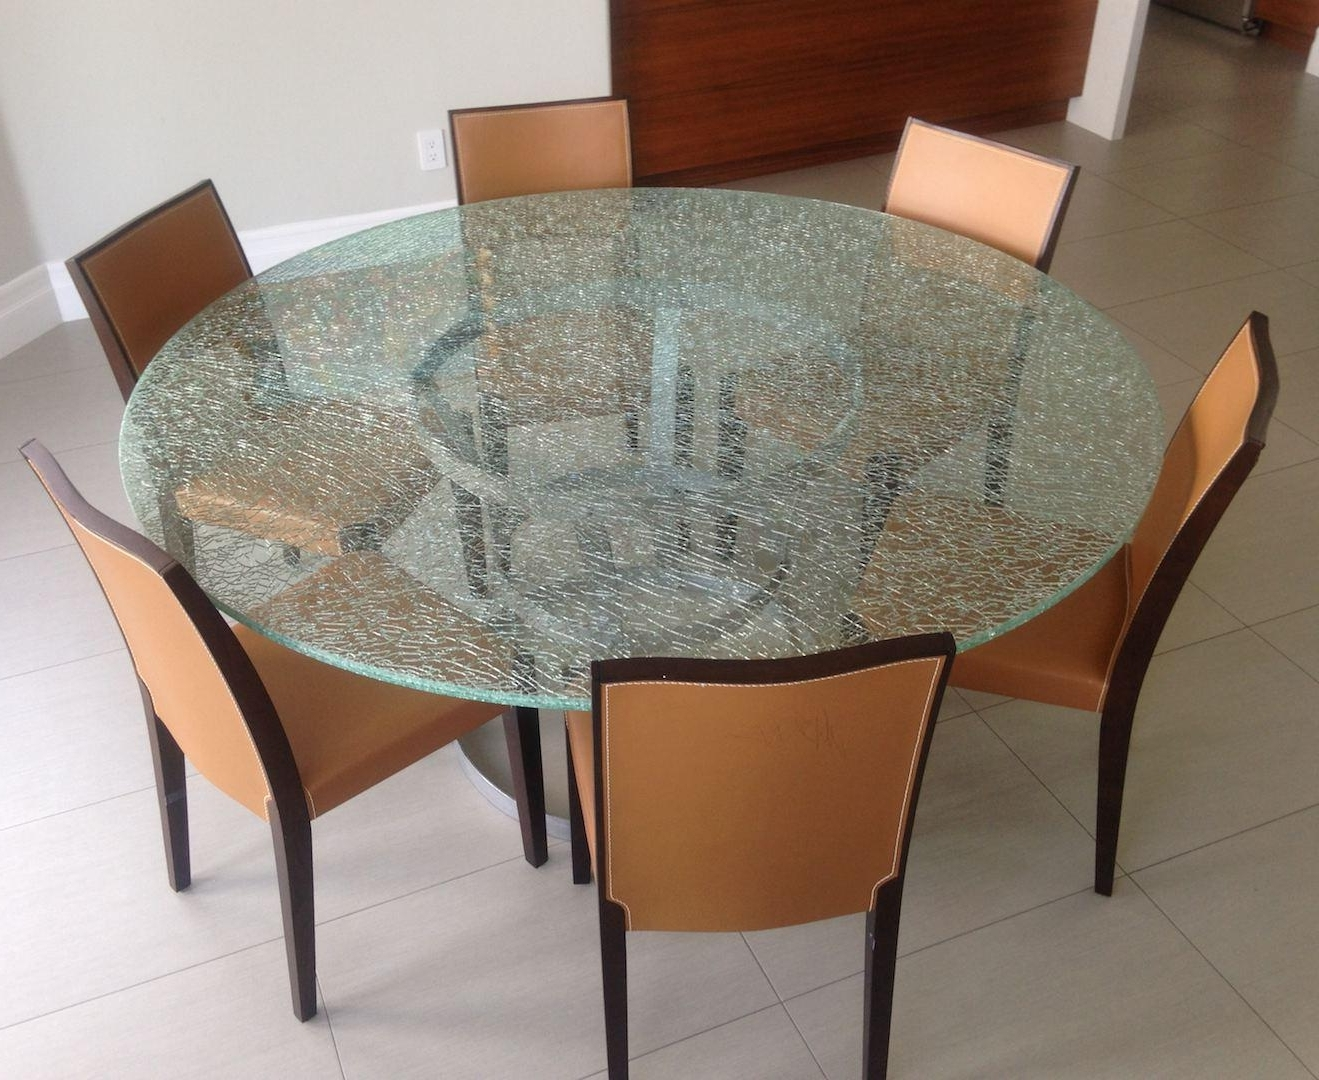 Crackle Glass Dining Table Top : House Photos – Crackle Glass Dining Within Popular Wood Glass Dining Tables (View 14 of 25)